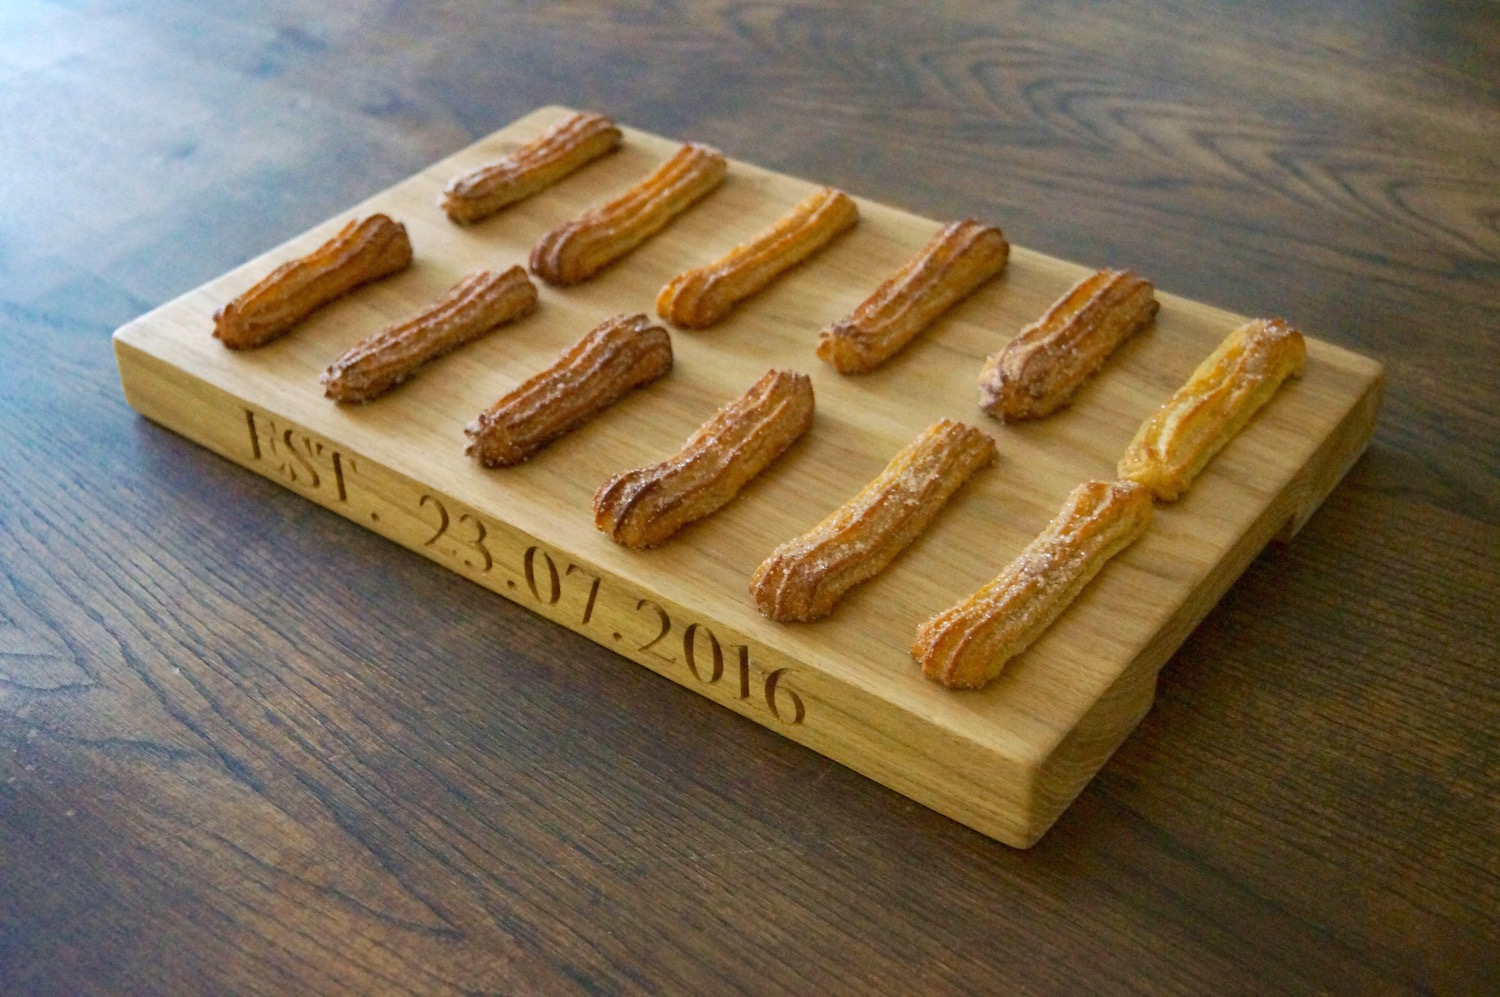 great-british-bake-off-wooden-serving-boards-makemesomethingspecial.com